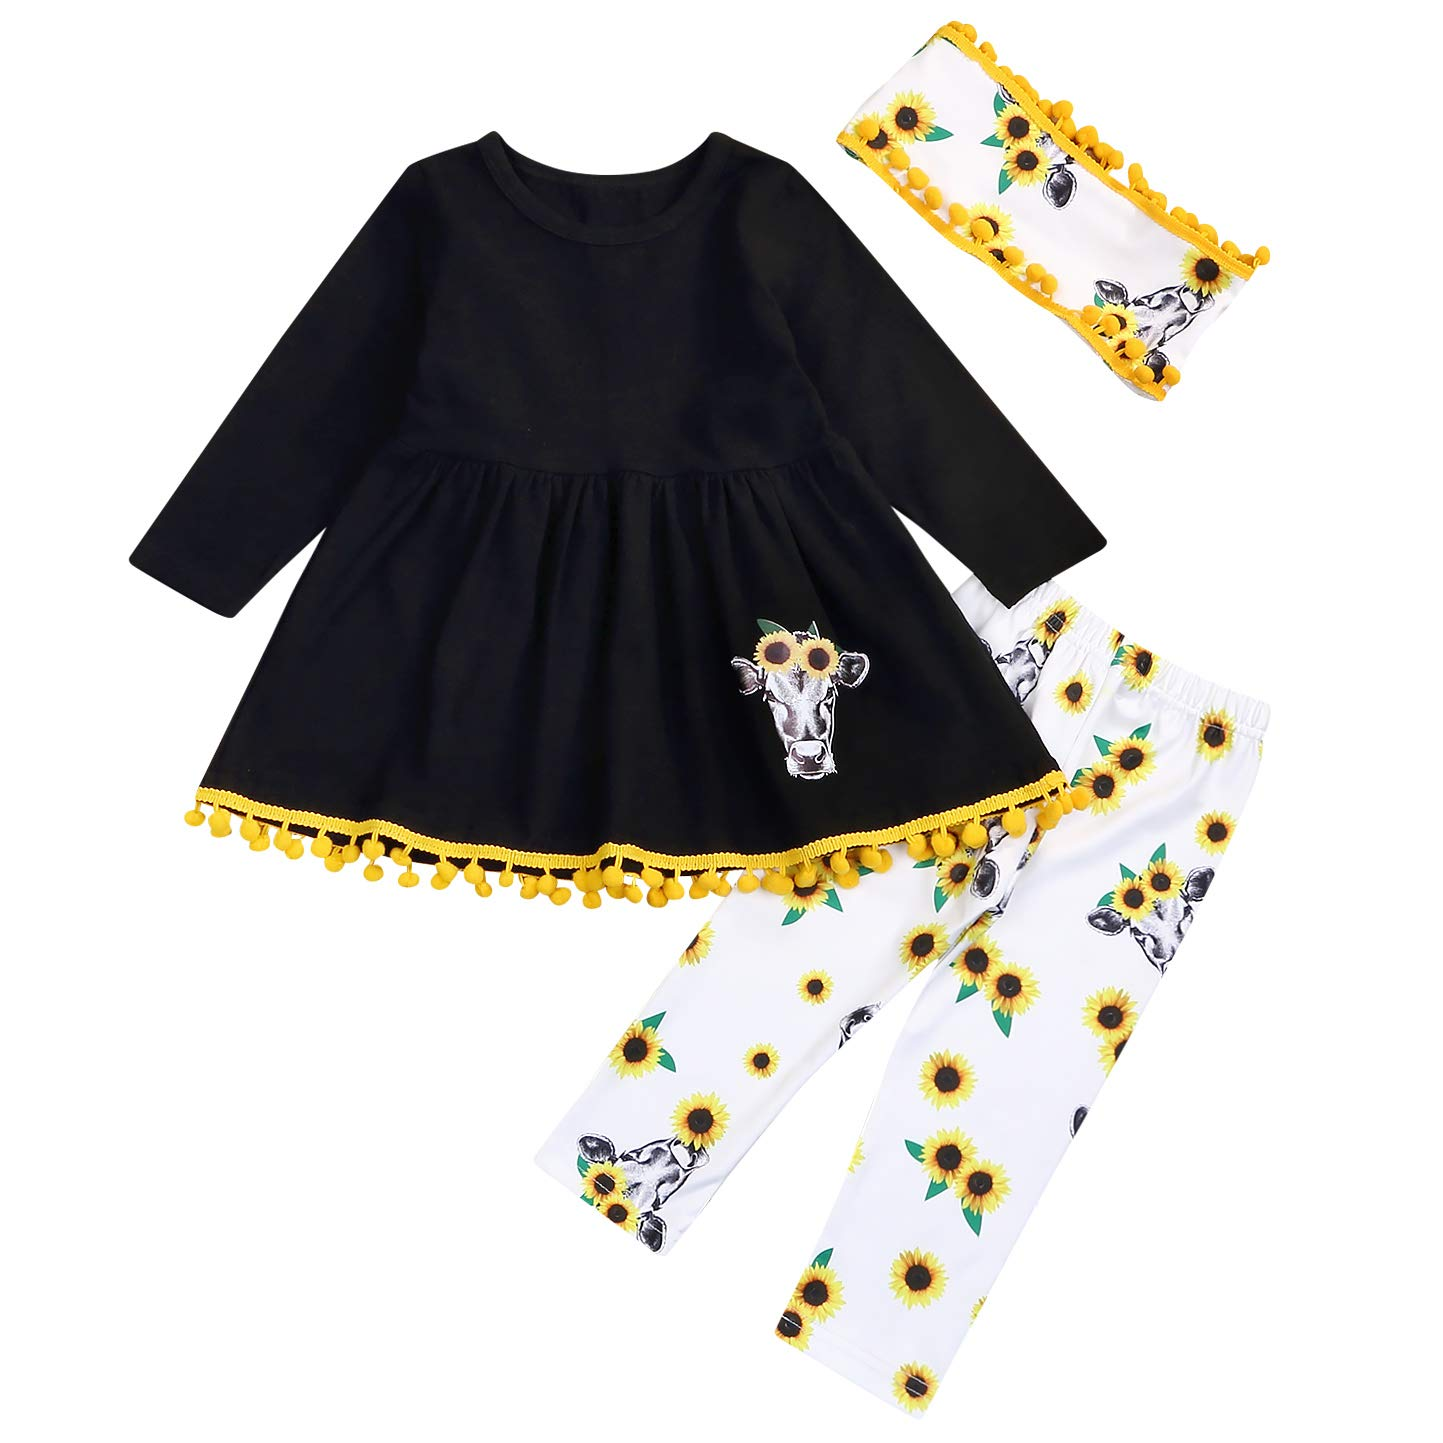 Toddler Baby Girls Fall Winter Clothes Set Long Sleeve Tassel Tunic Dress Tops Pants Scarf 3Pcs Floral Outfit